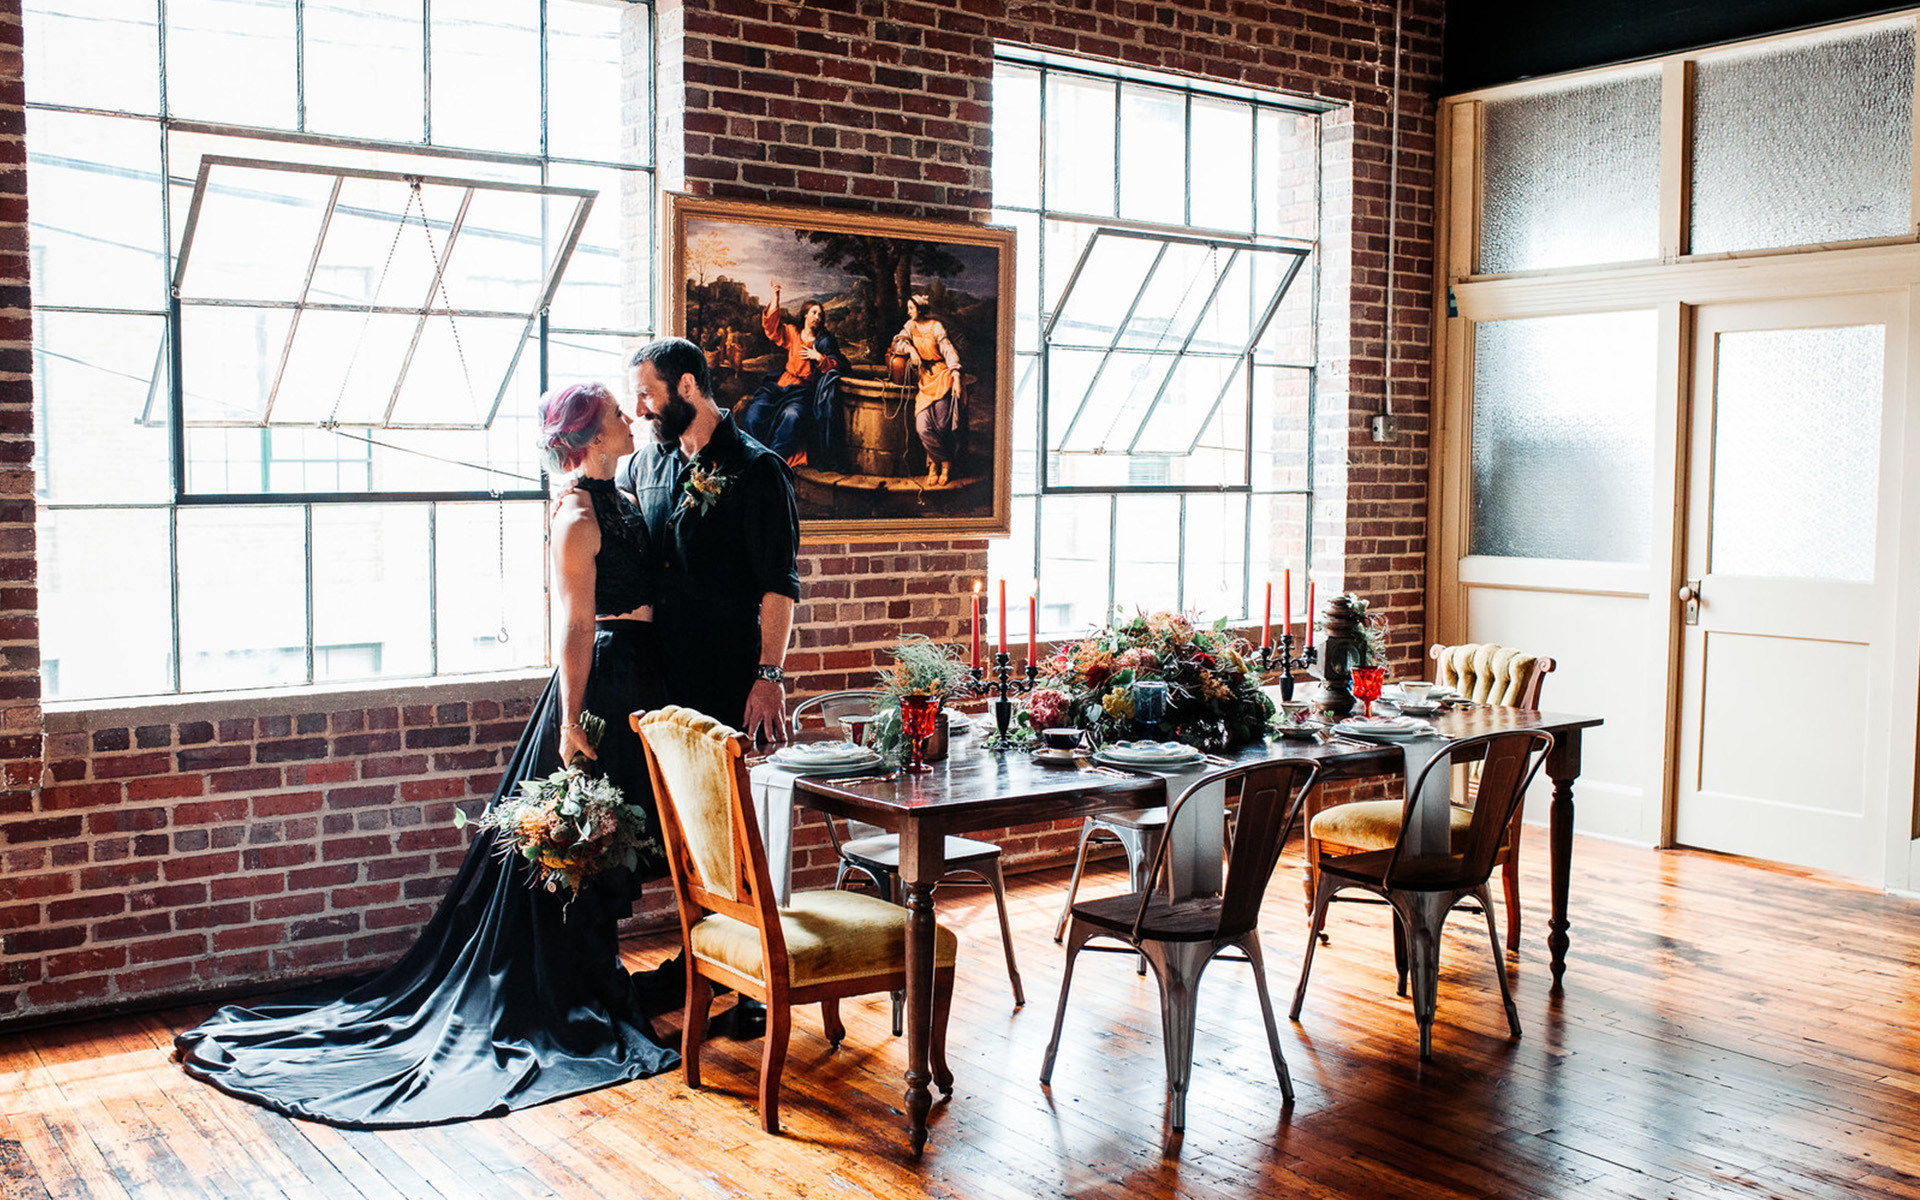 Spooky Romance Brought to Life in Steampunk Styled Shoot